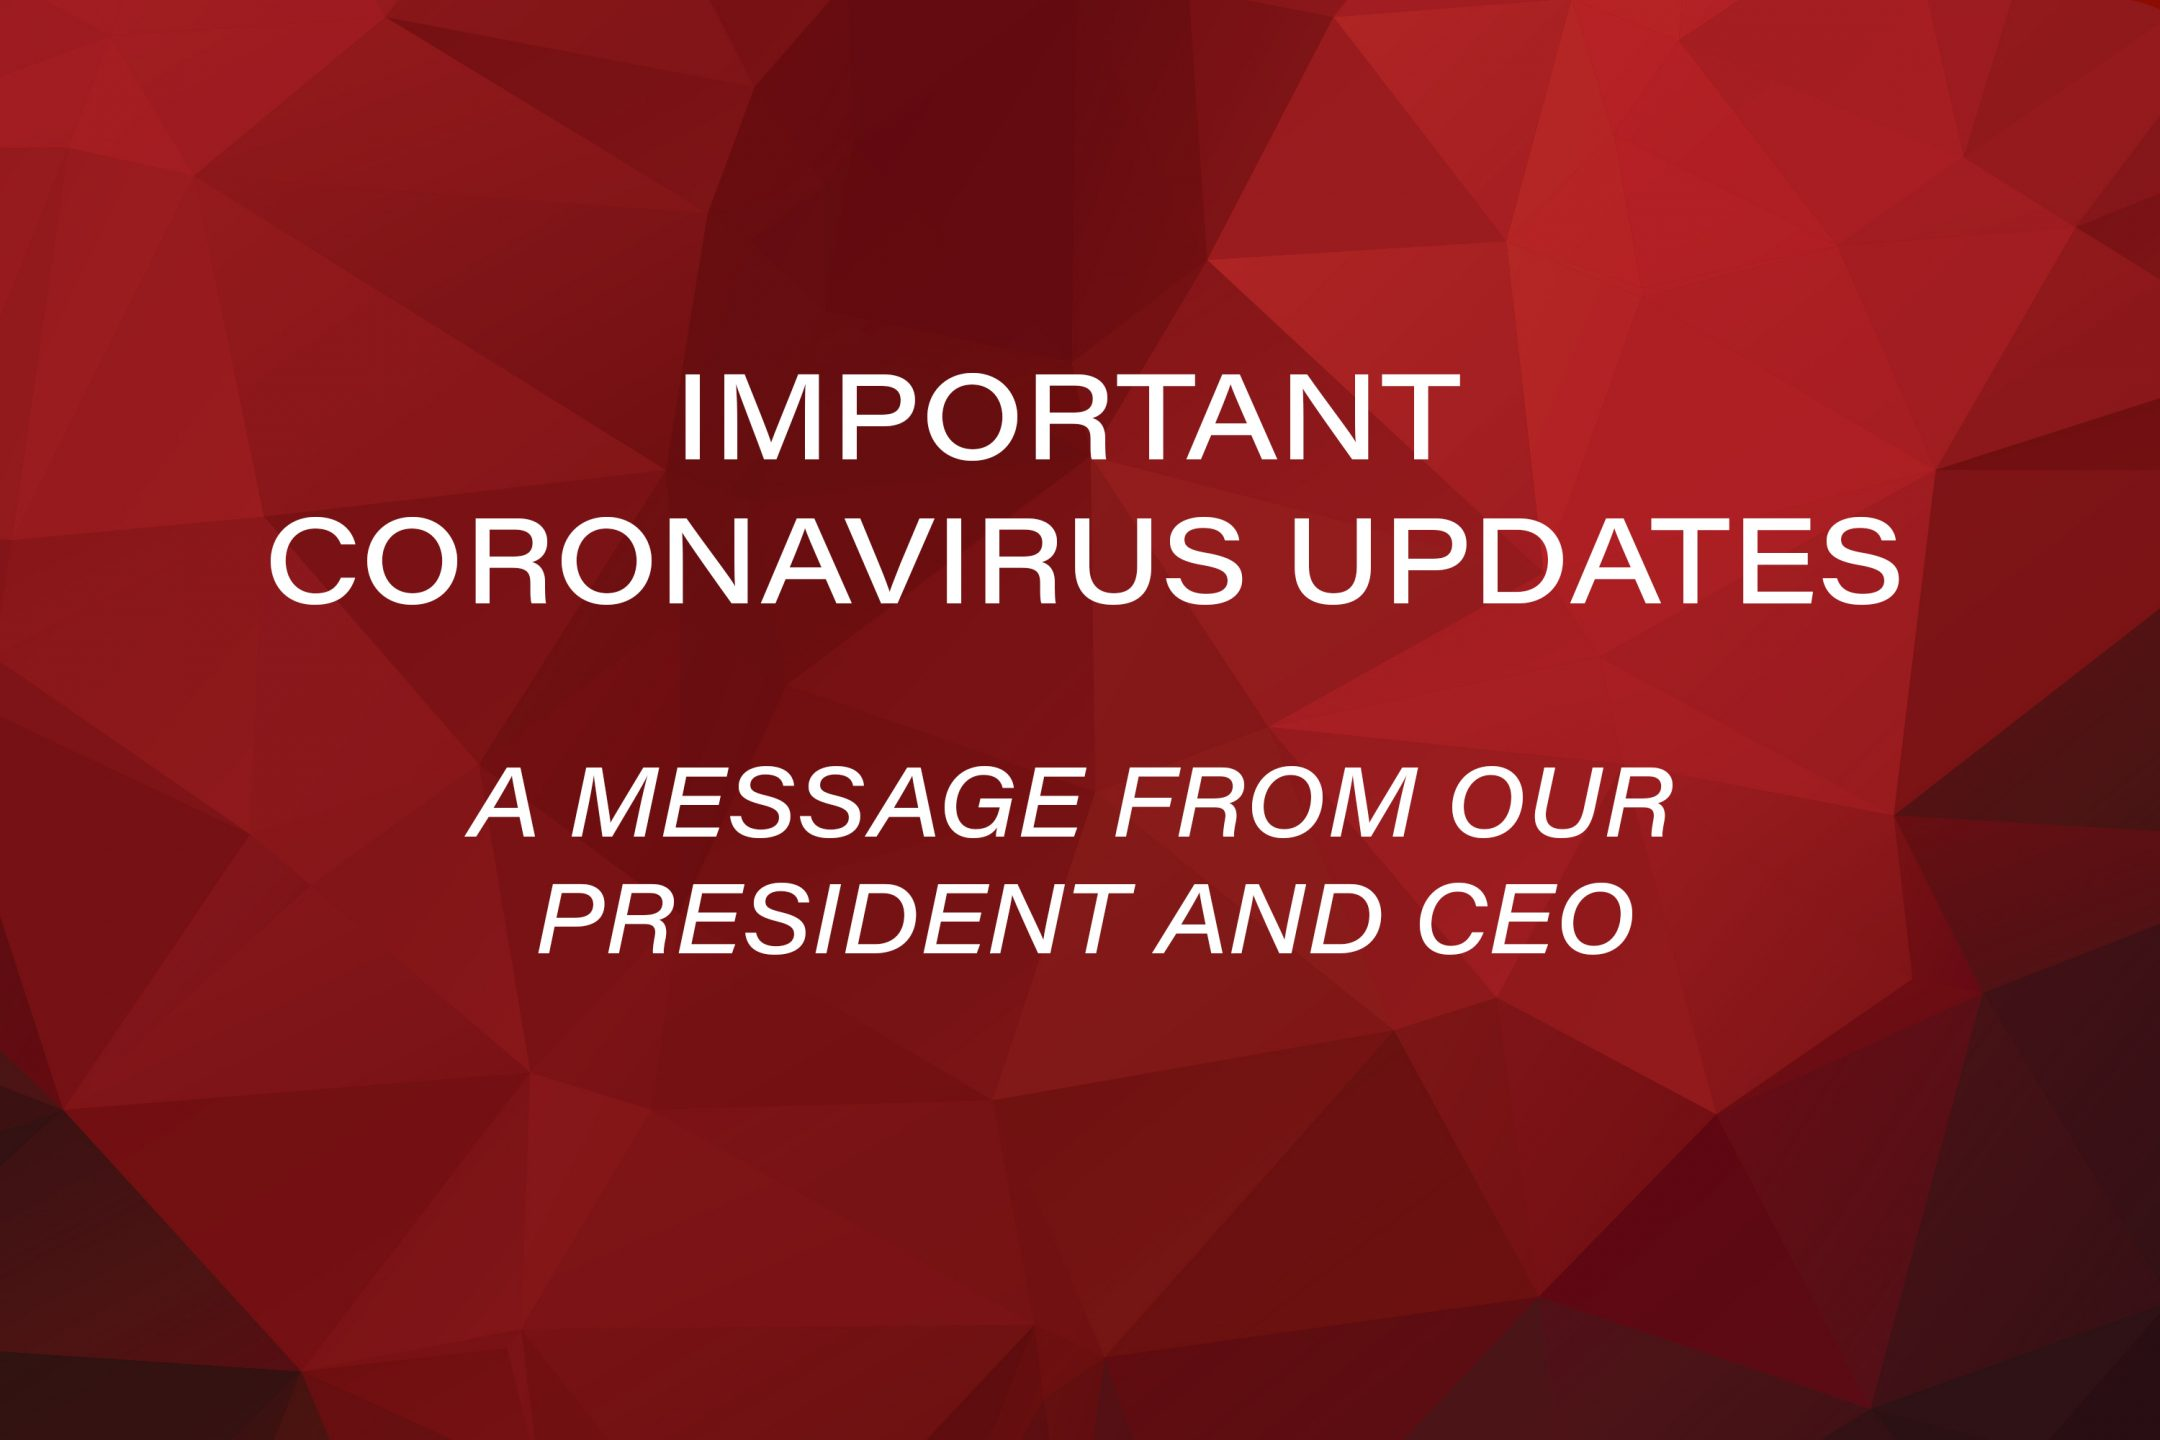 Important Coronavirus Updates. A message from our President and CEO.